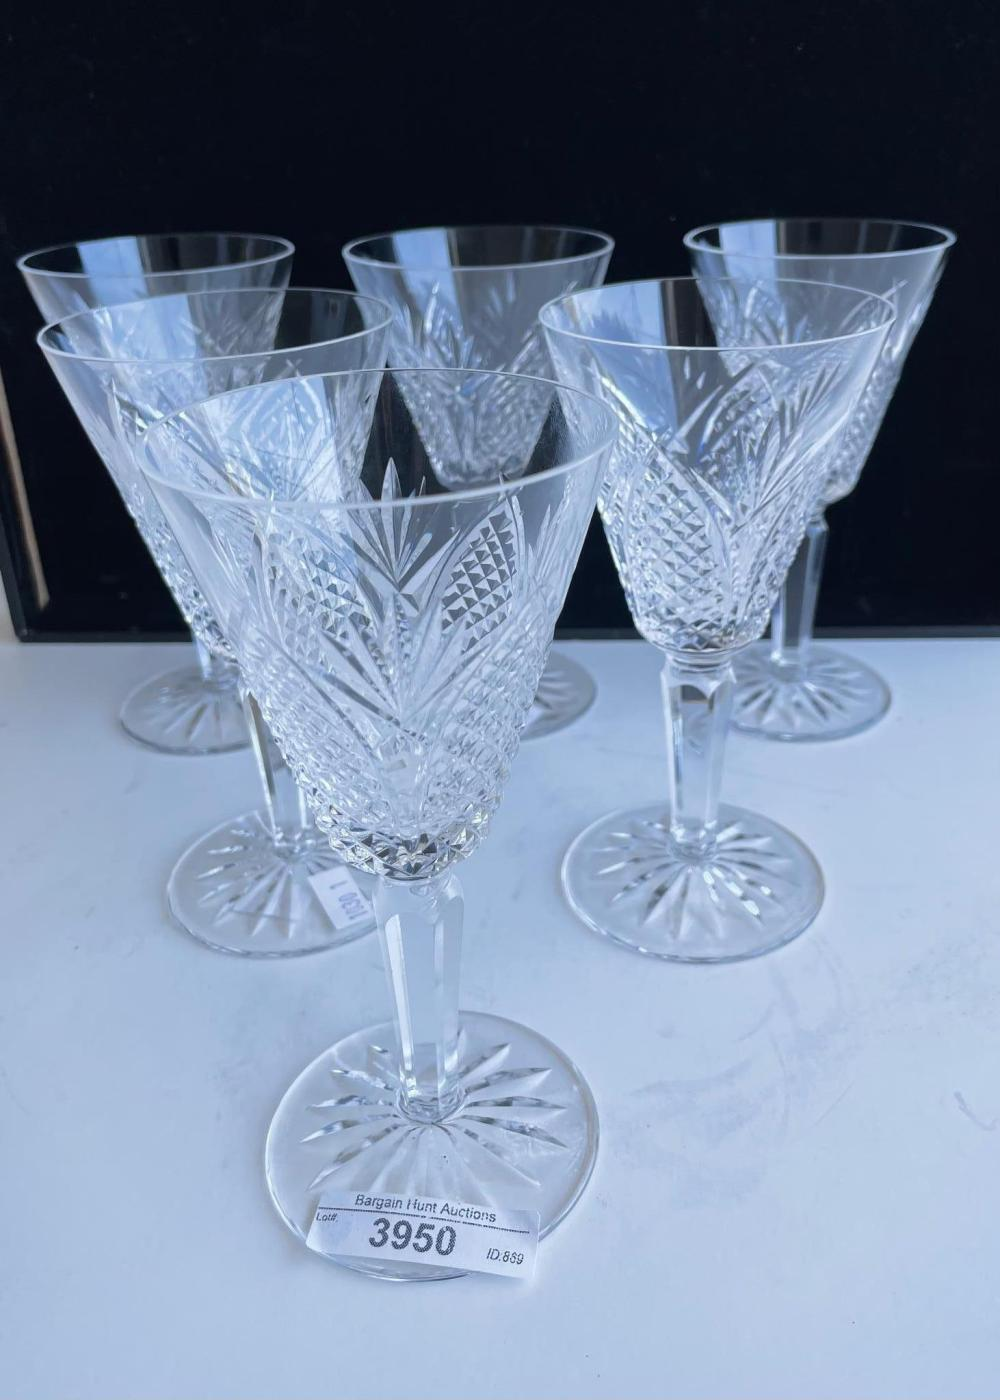 Set of six Waterford Crystal 'Dunmore' wine glasses, 15.70 cm. (6.18 in.)